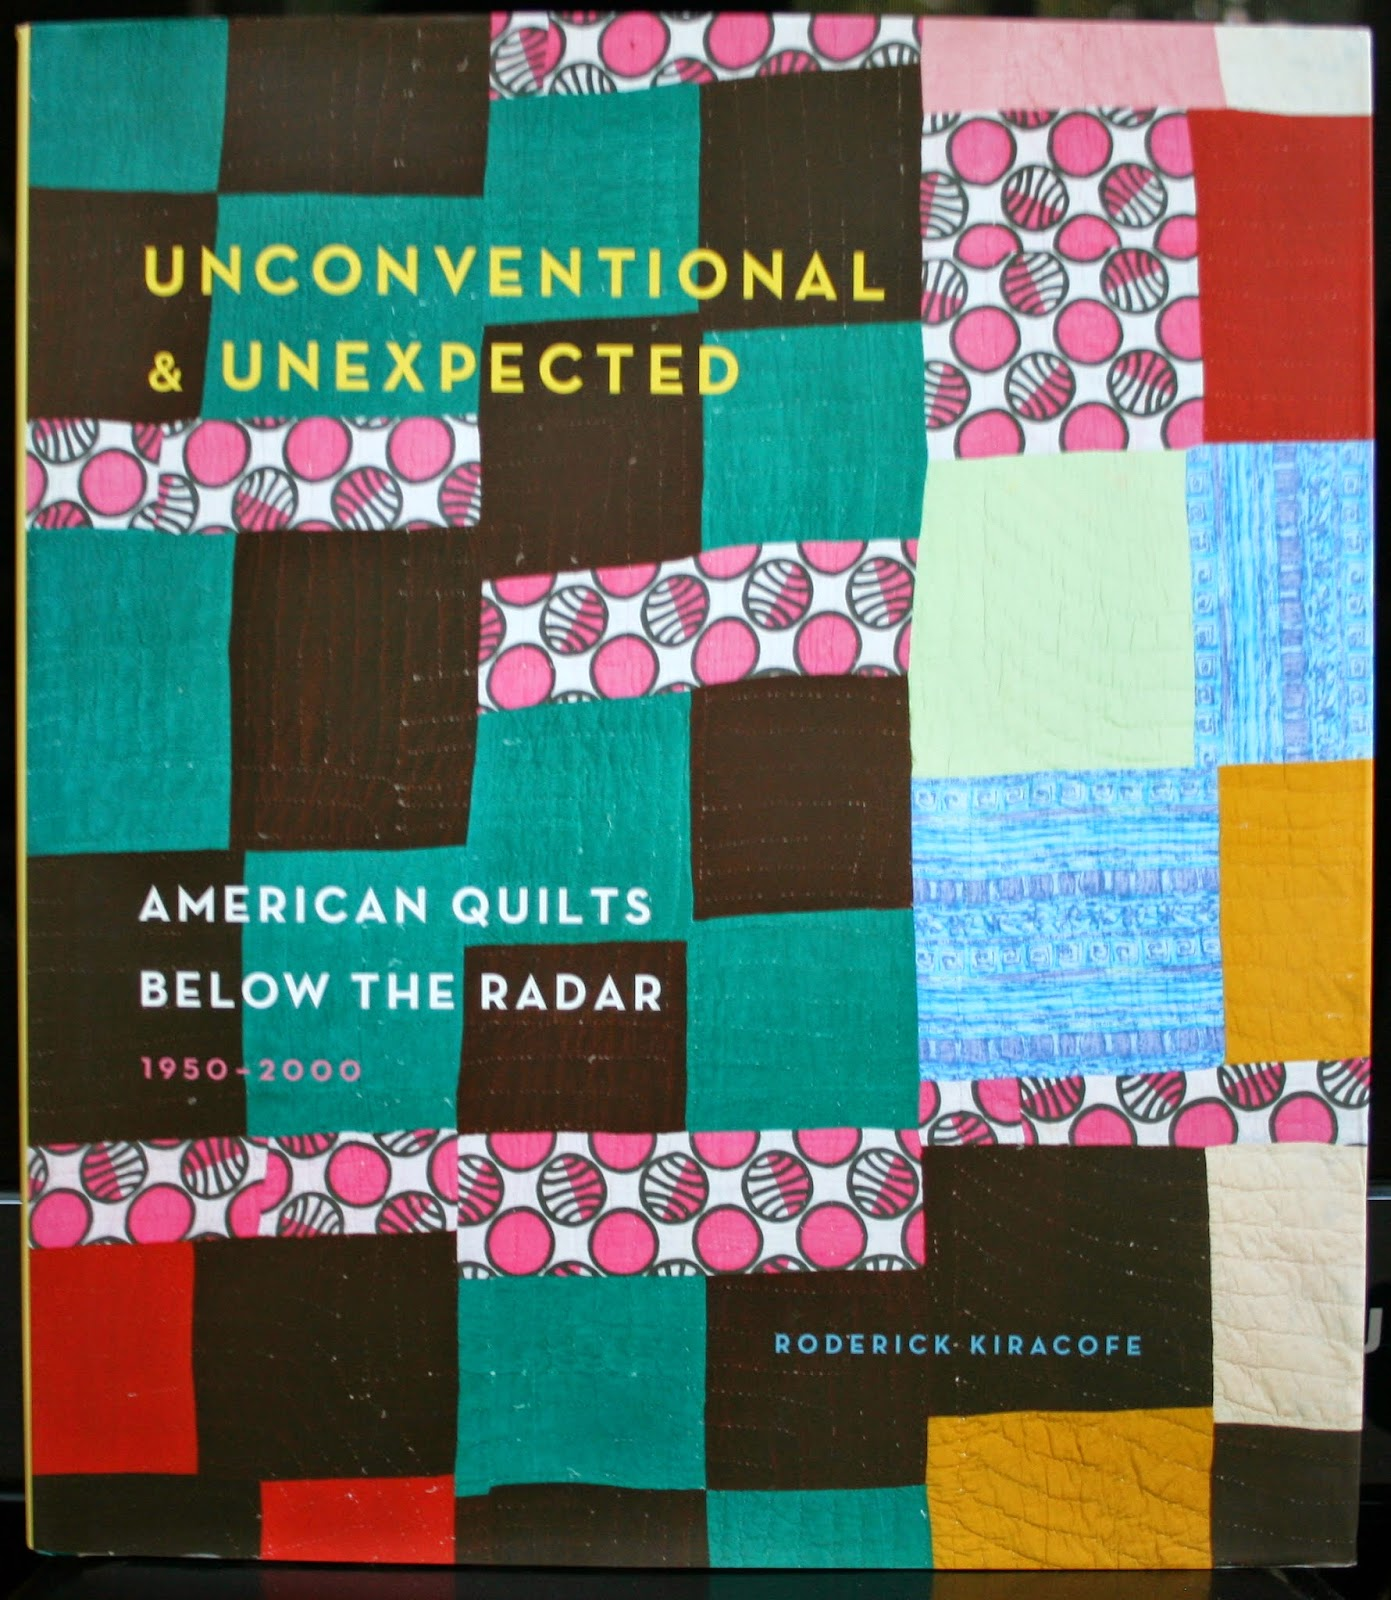 http://www.amazon.com/Unconventional-Unexpected-American-Quilts-1950-2000/dp/1617691232/ref=la_B000APF6UY_1_1?s=books&ie=UTF8&qid=1410871188&sr=1-1